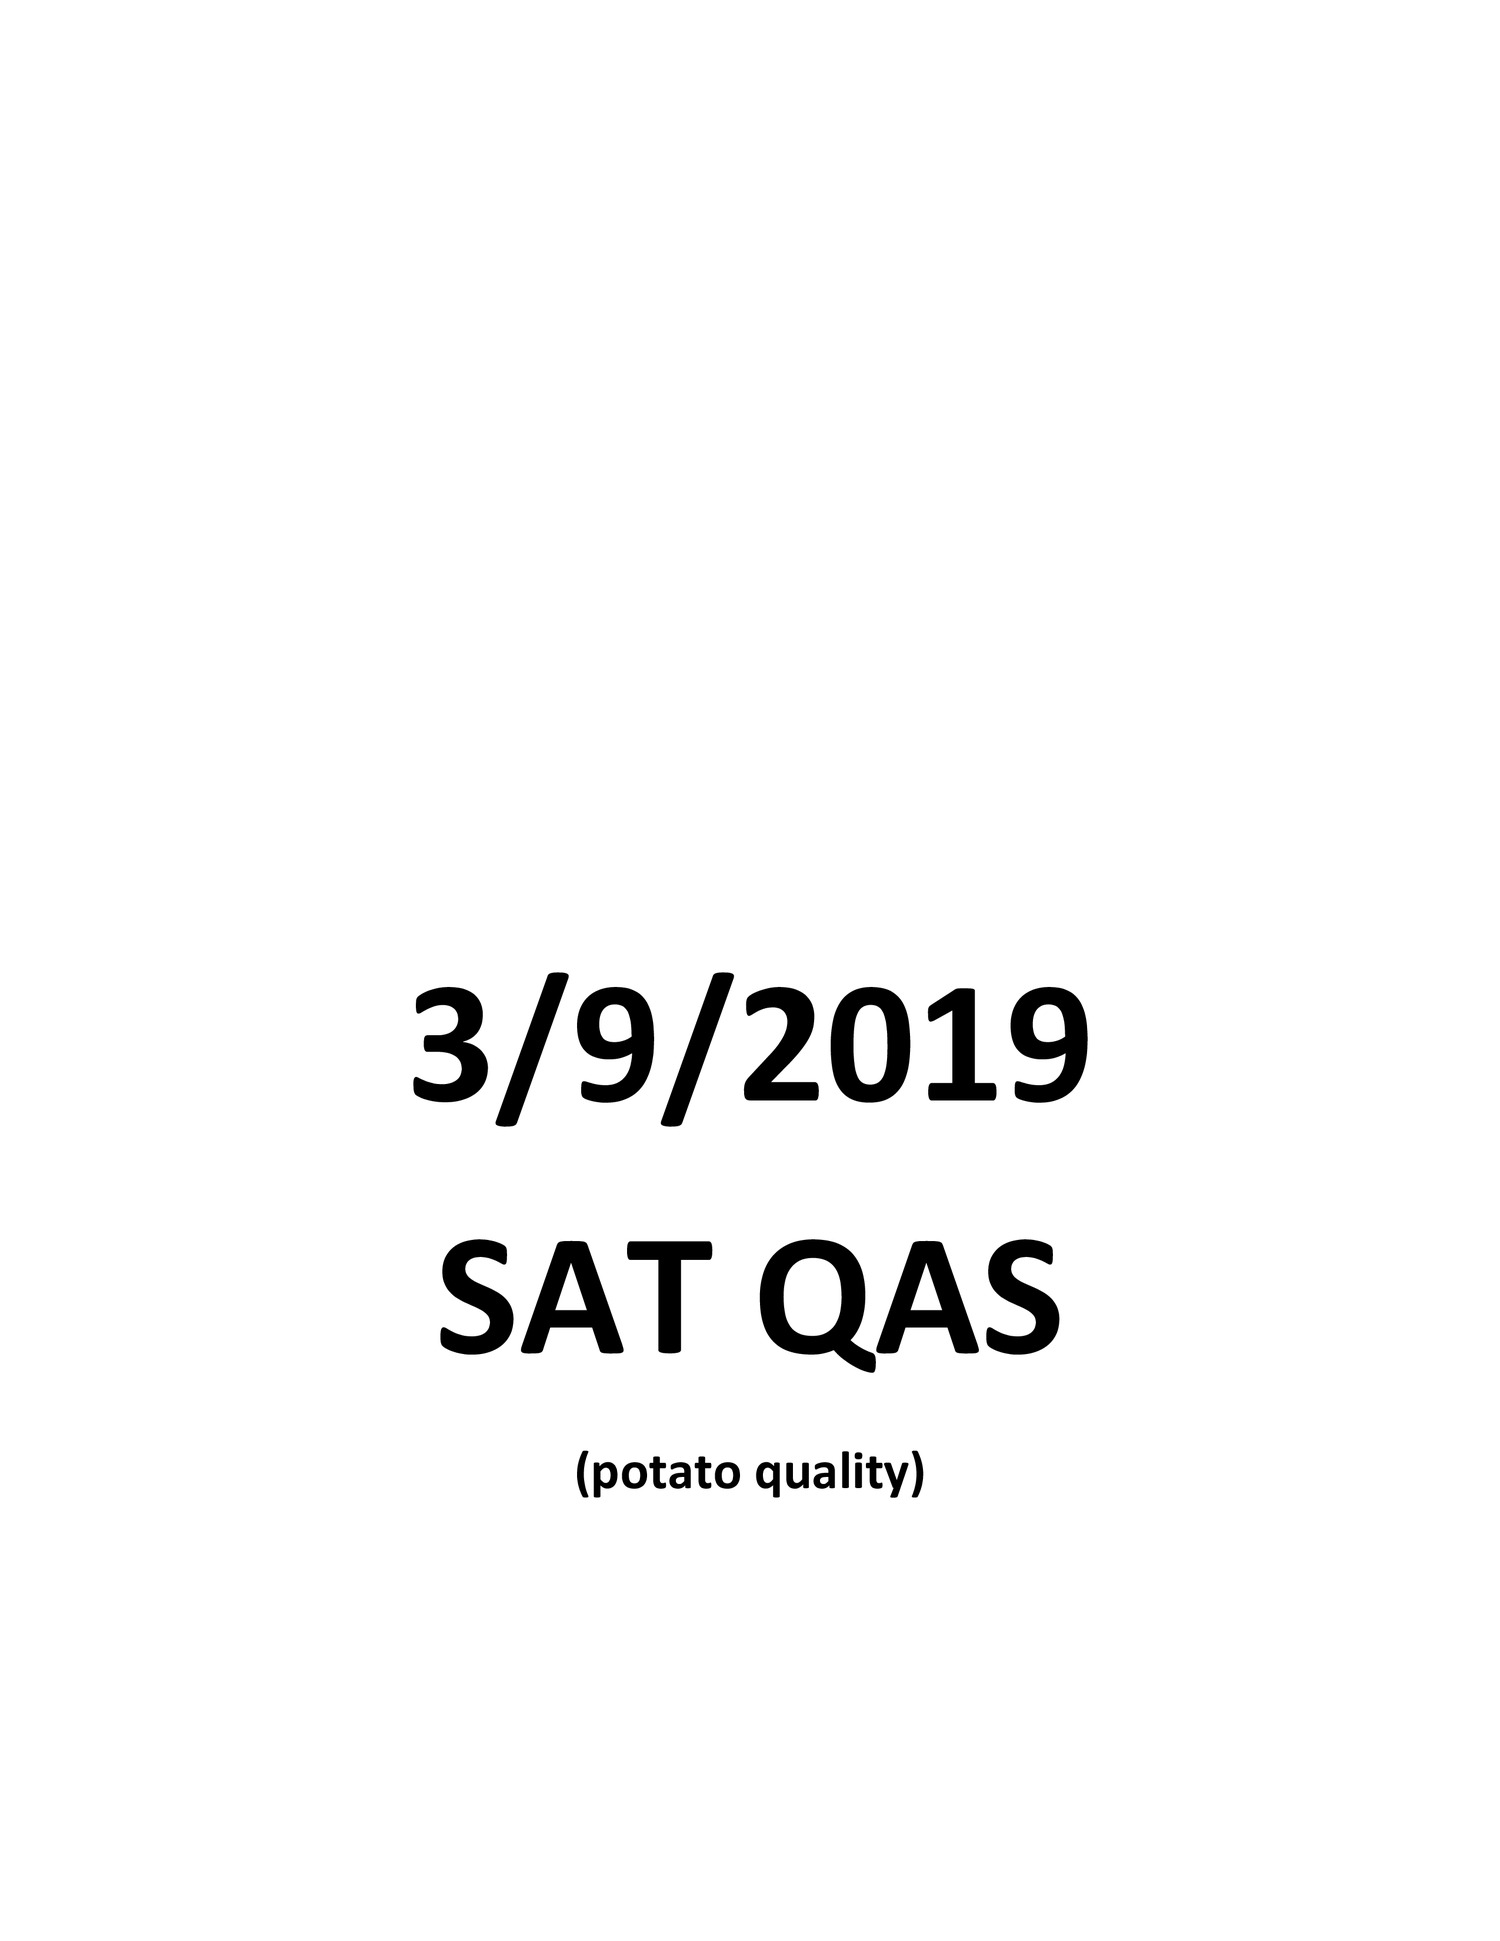 2019 03 09 SAT QAS POTATO VERSION pdf | DocDroid